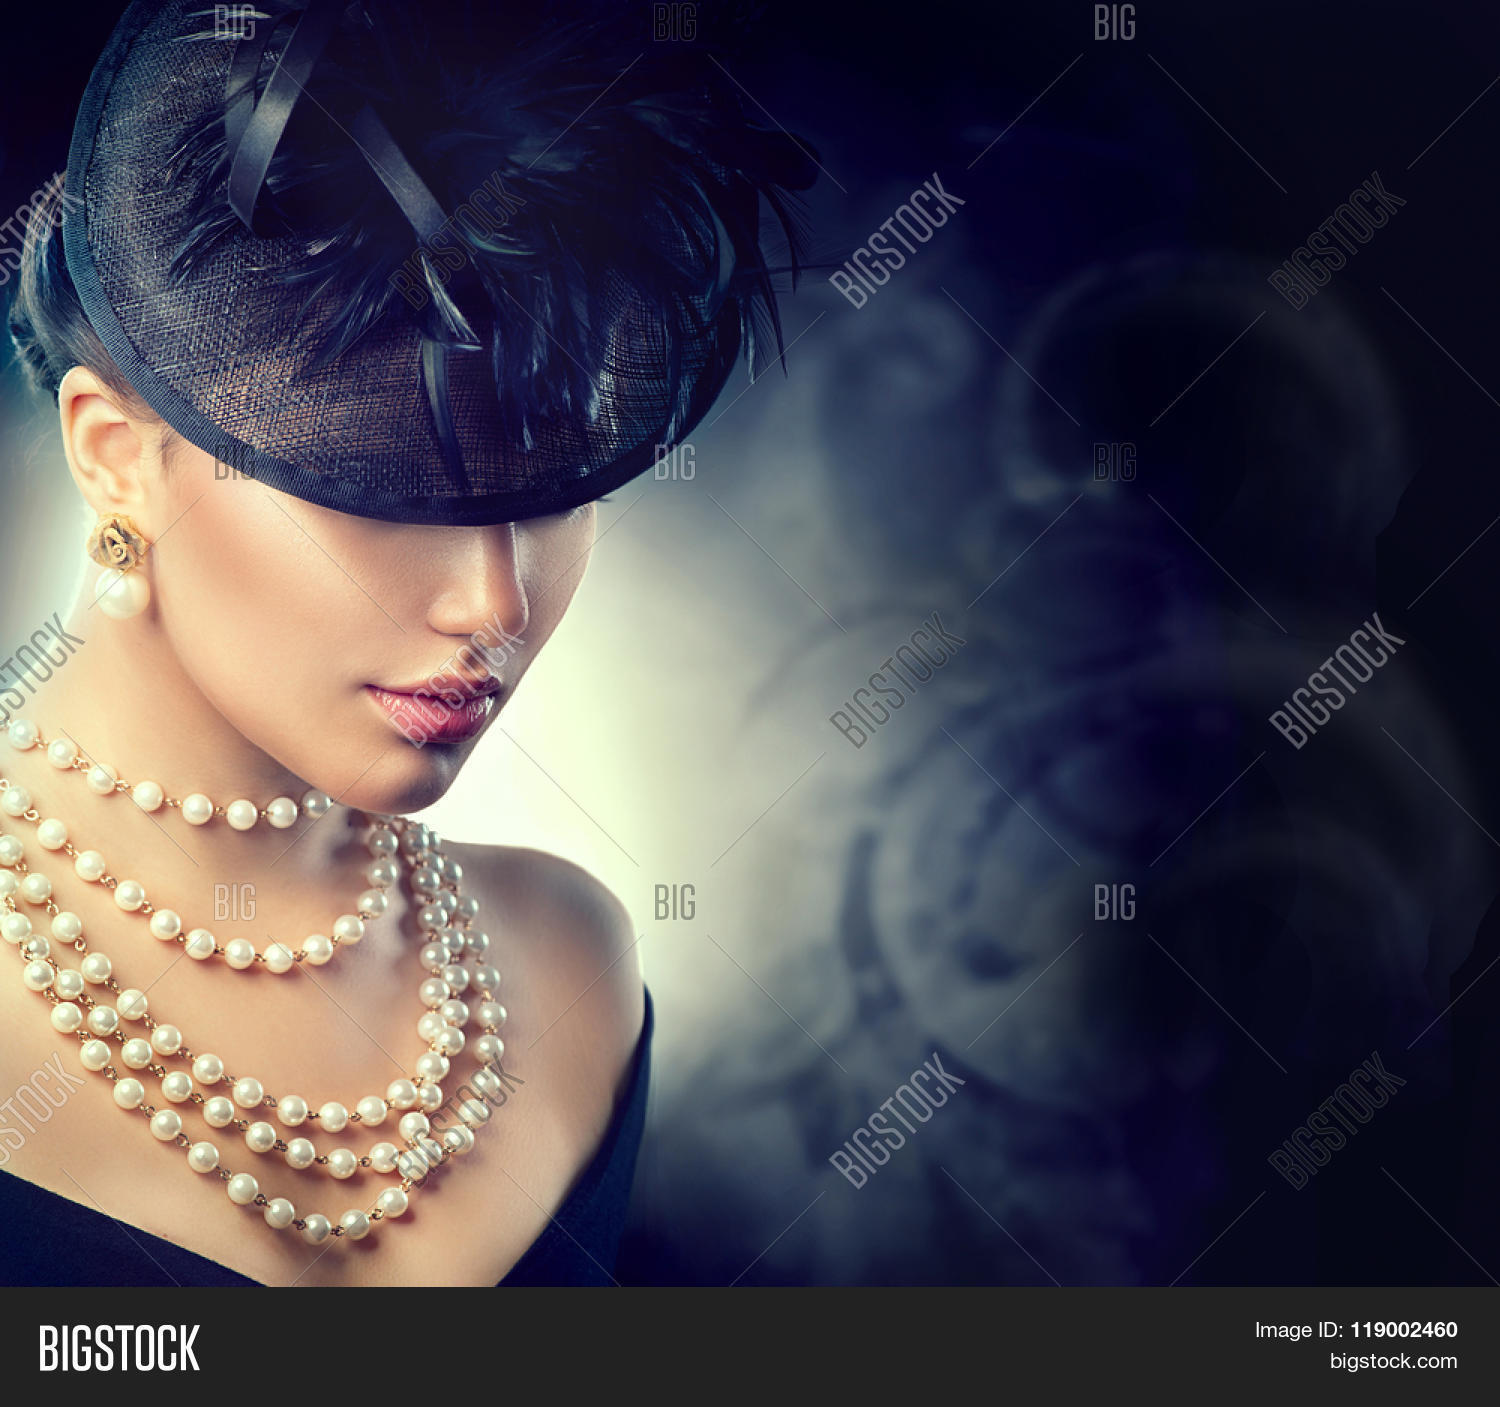 Retro Woman Portrait Vintage Style Girl Wearing Old Fashioned Hat, Pearls  Necklace And Earrings